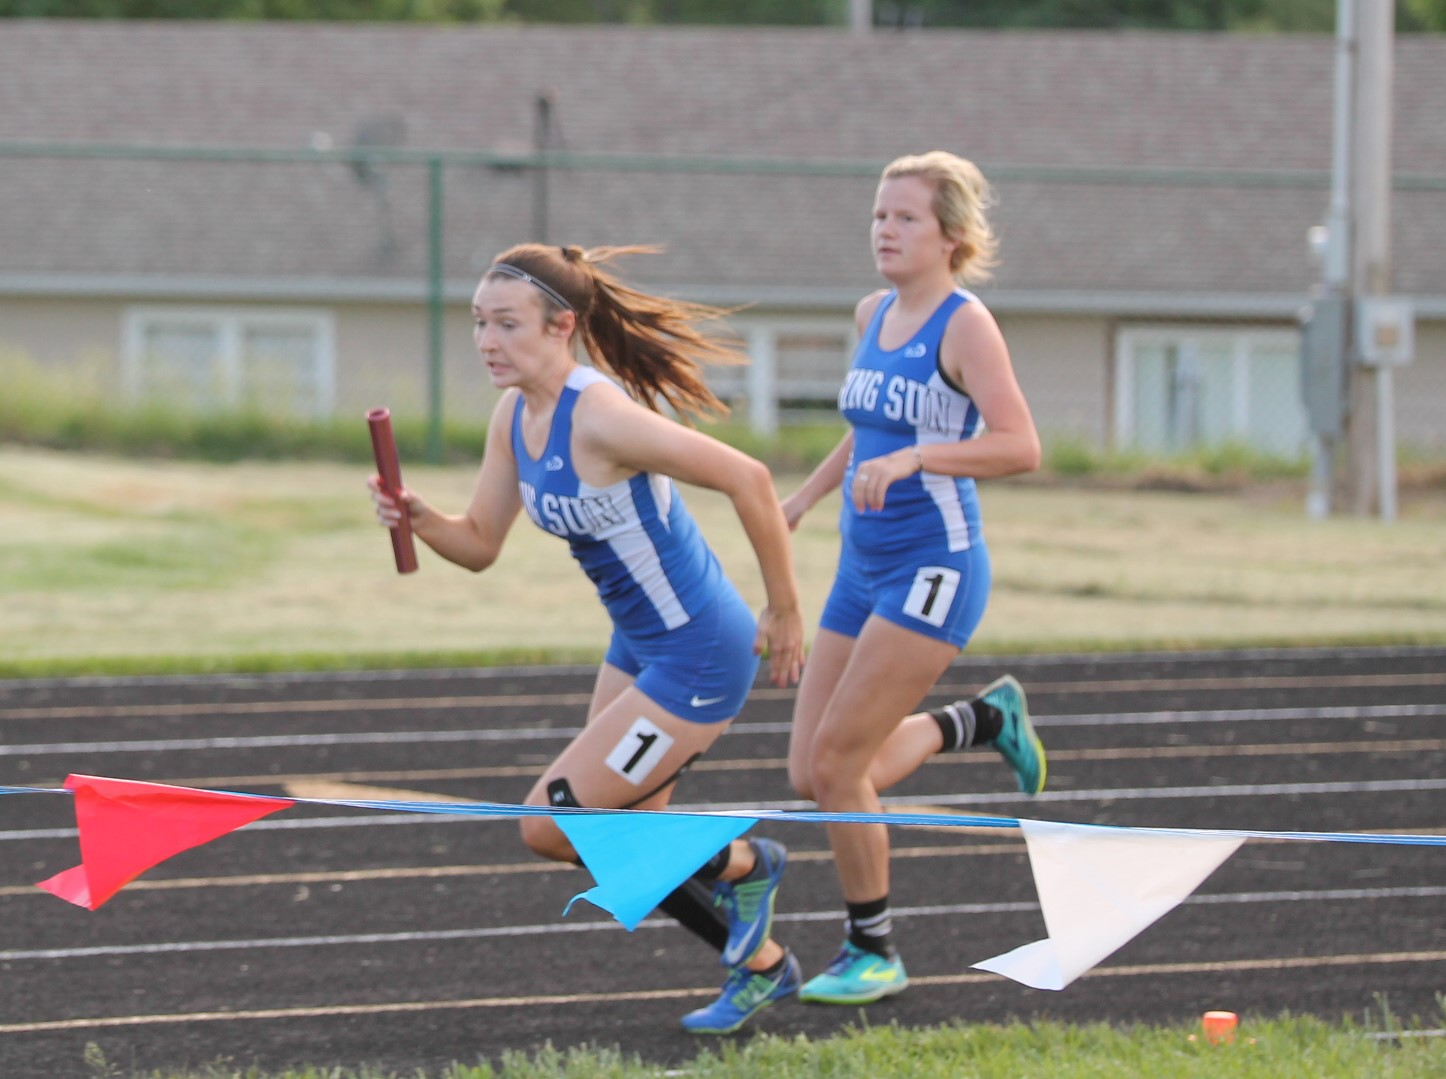 Rising Sun Girl's Track at the 2018 Girl's Track Sectionals